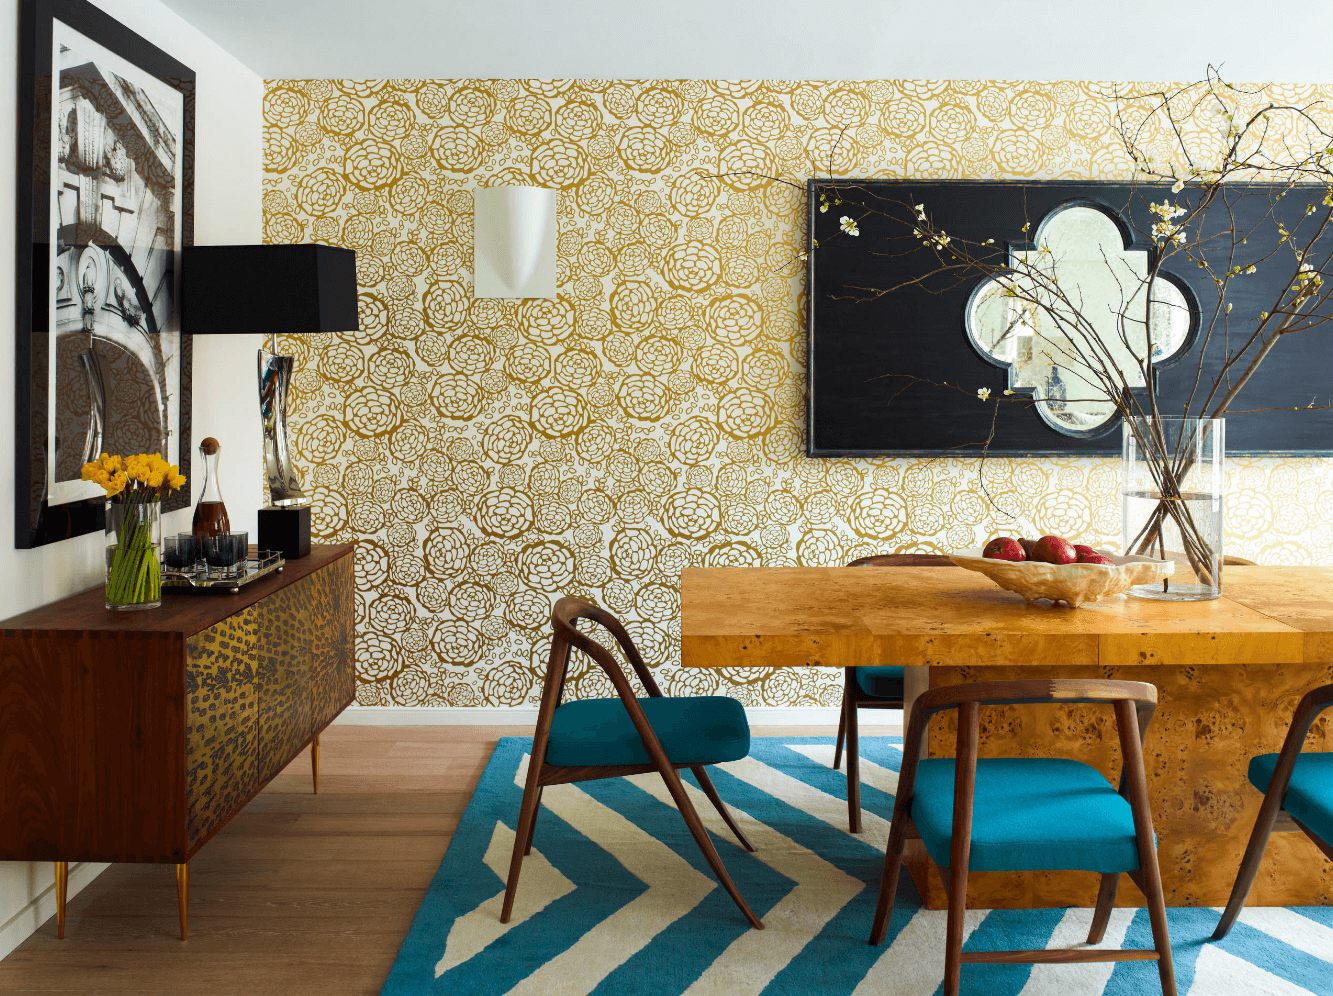 wallpaper ideas freshome17 & 28 Stunning Wallpaper Ideas Your Home Needs | Freshome.com